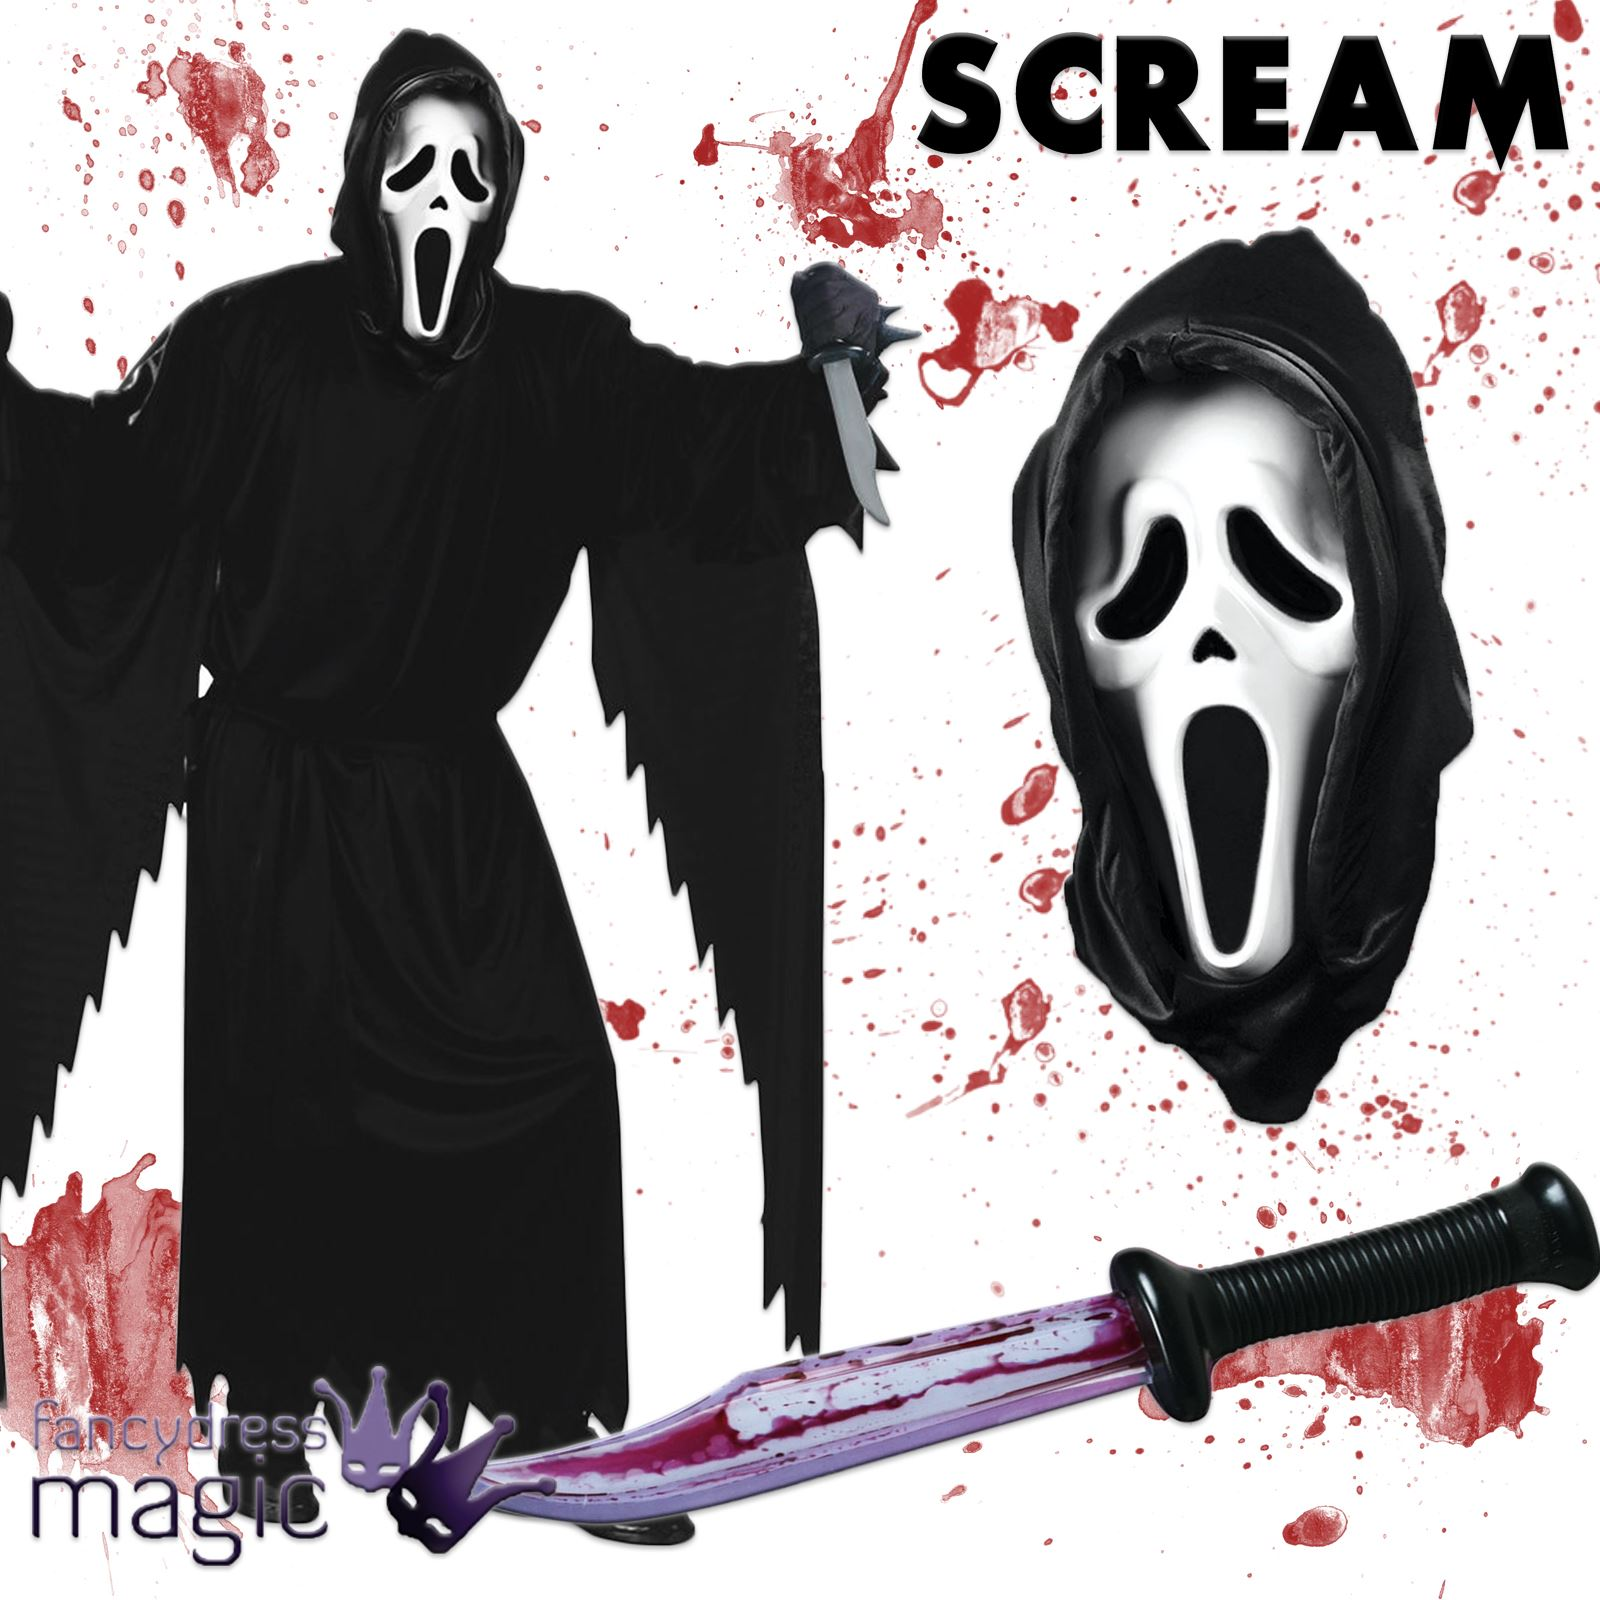 offiziell lizenziert erwachsene gespenstergesicht scream kost m outfit halloween ebay. Black Bedroom Furniture Sets. Home Design Ideas